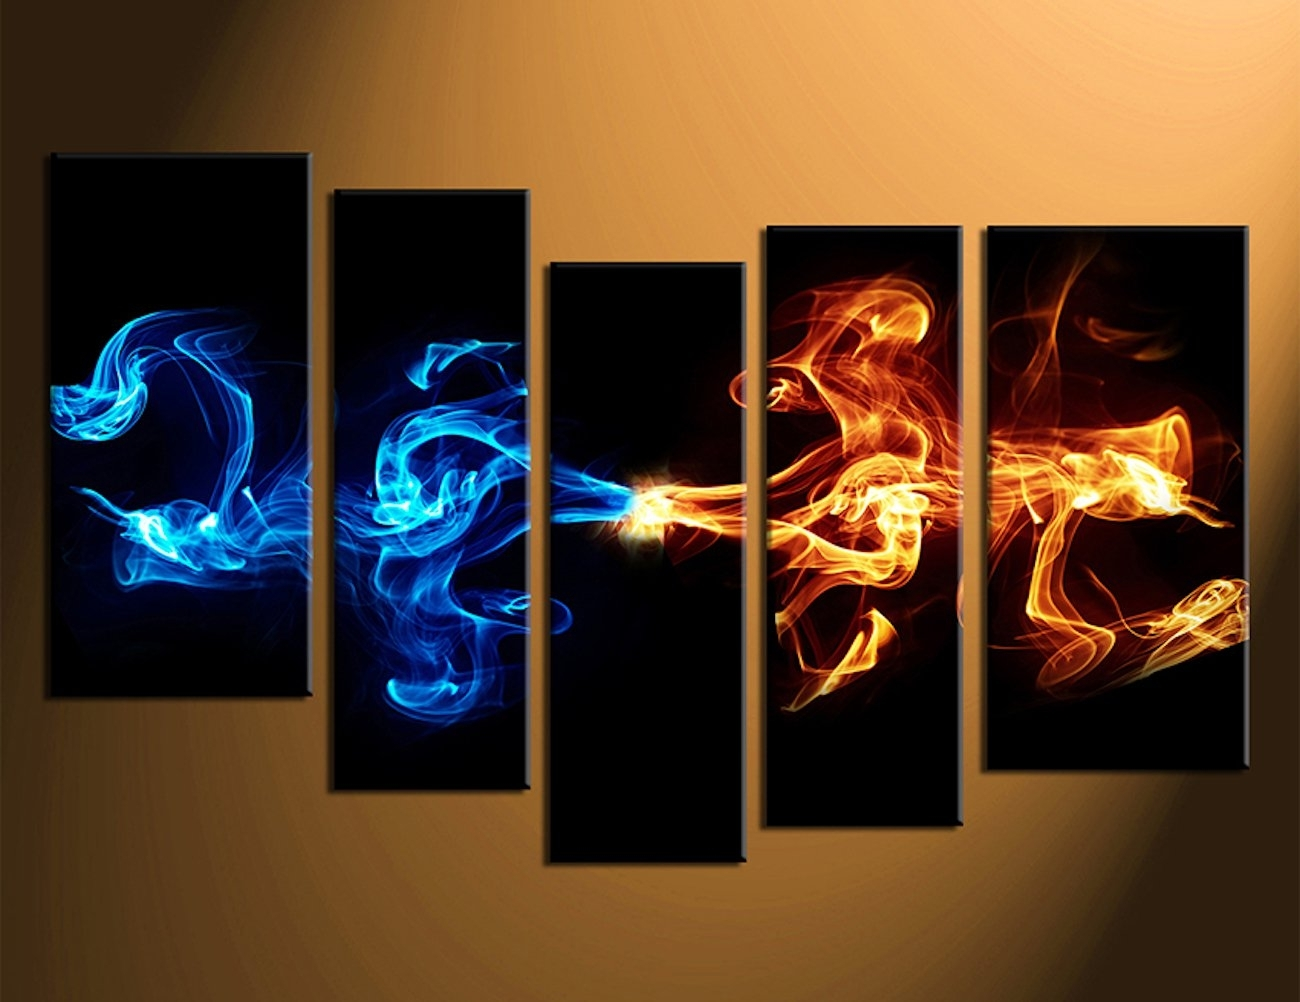 Abstract 5 Piece Smoke Canvas Wall Art » Gadget Flow For Best And Newest 5 Piece Wall Art Canvas (View 2 of 15)